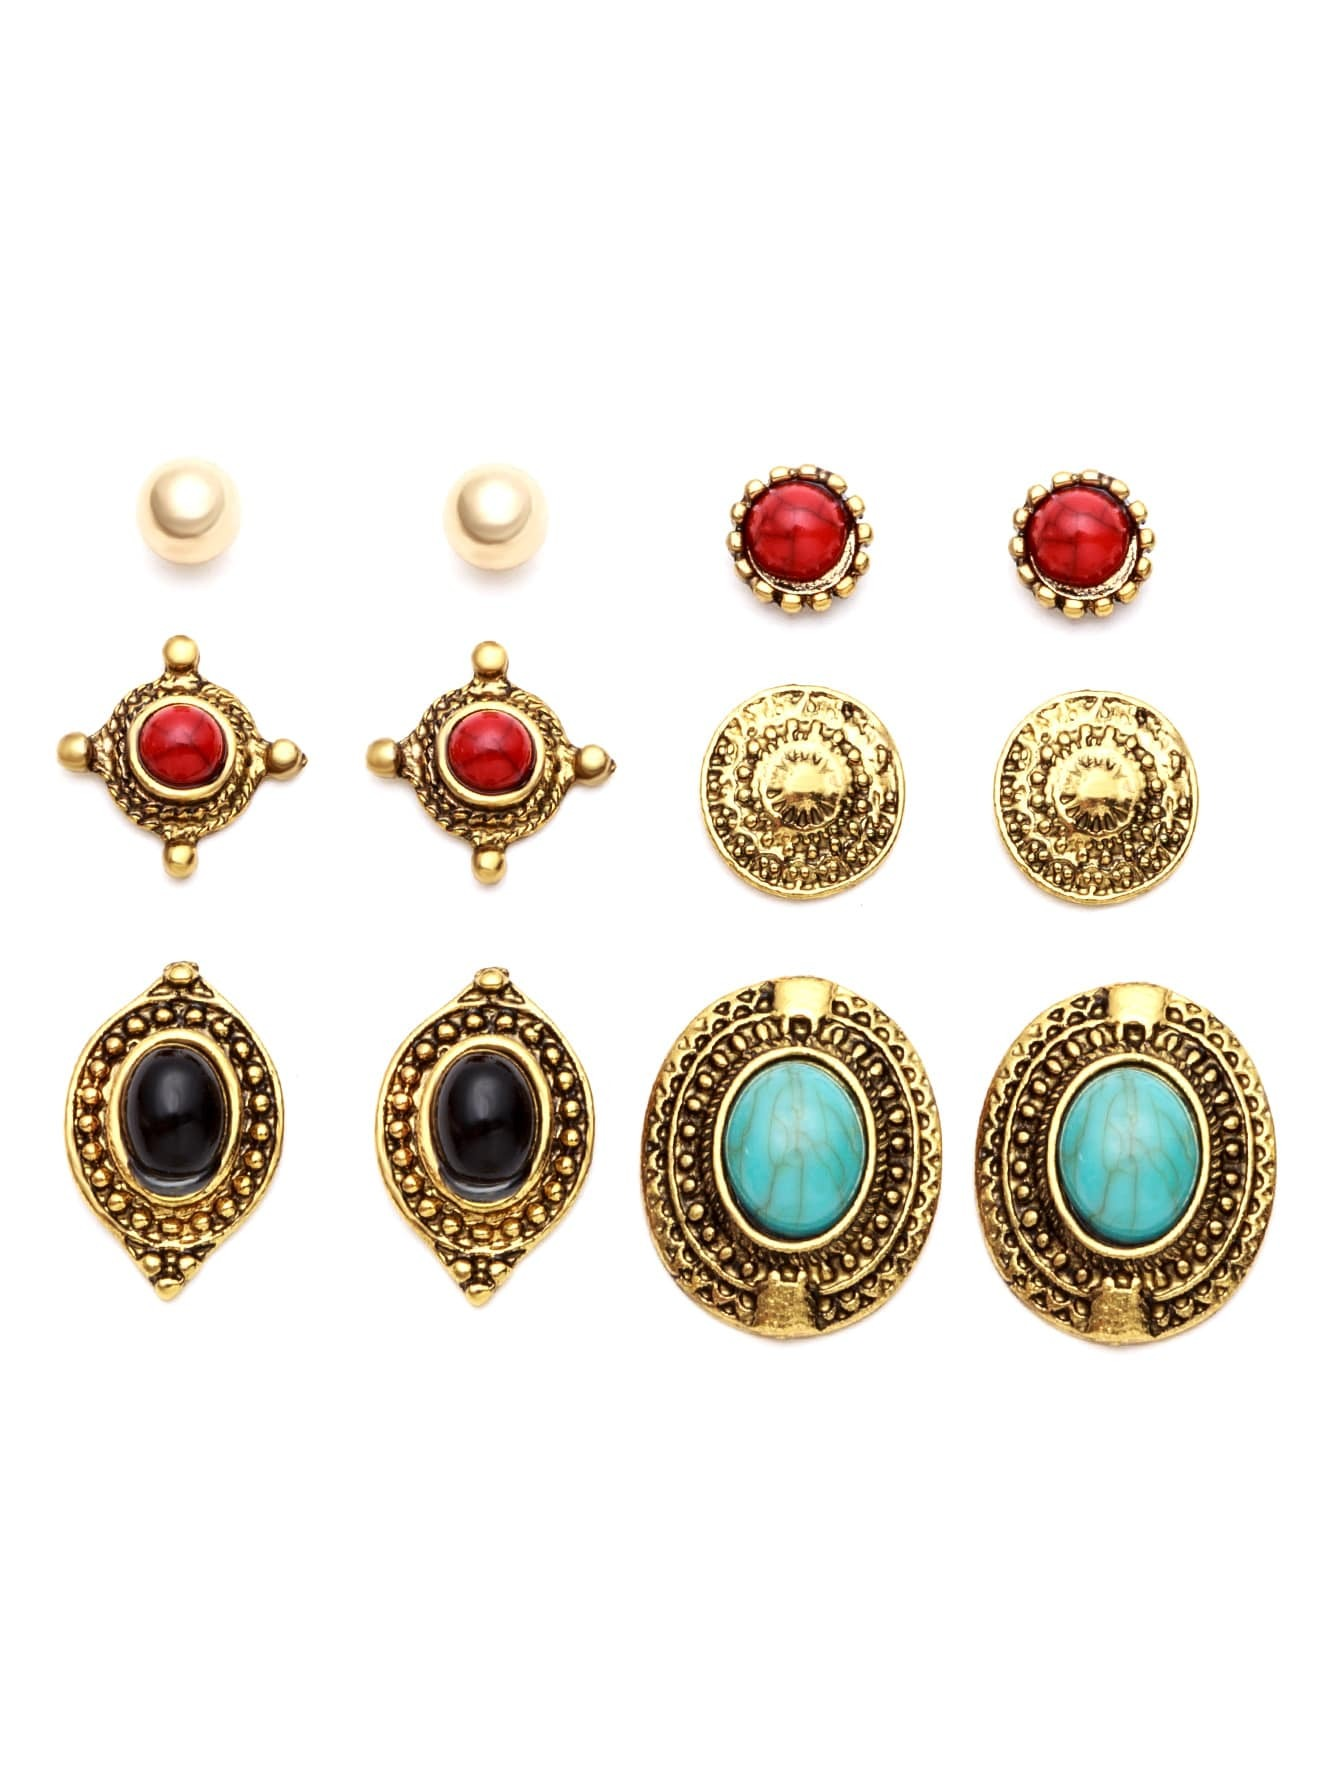 antique studs collections rings jewellery and gold stud jewel earrings pin ear